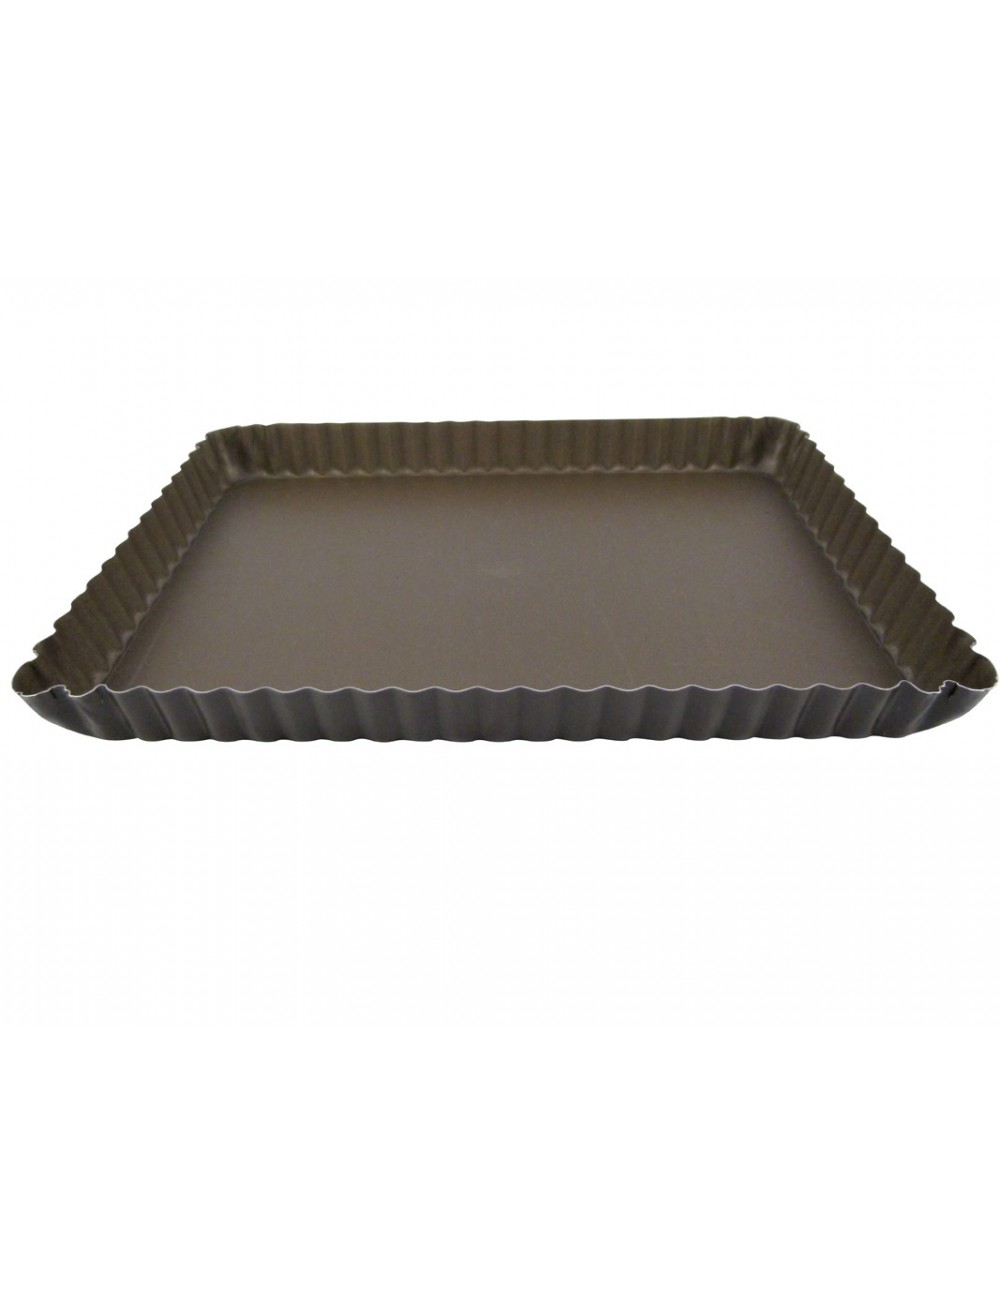 TOURTIERE RECTANGLE - FOND MOBILE - ANTI-ADHERENT